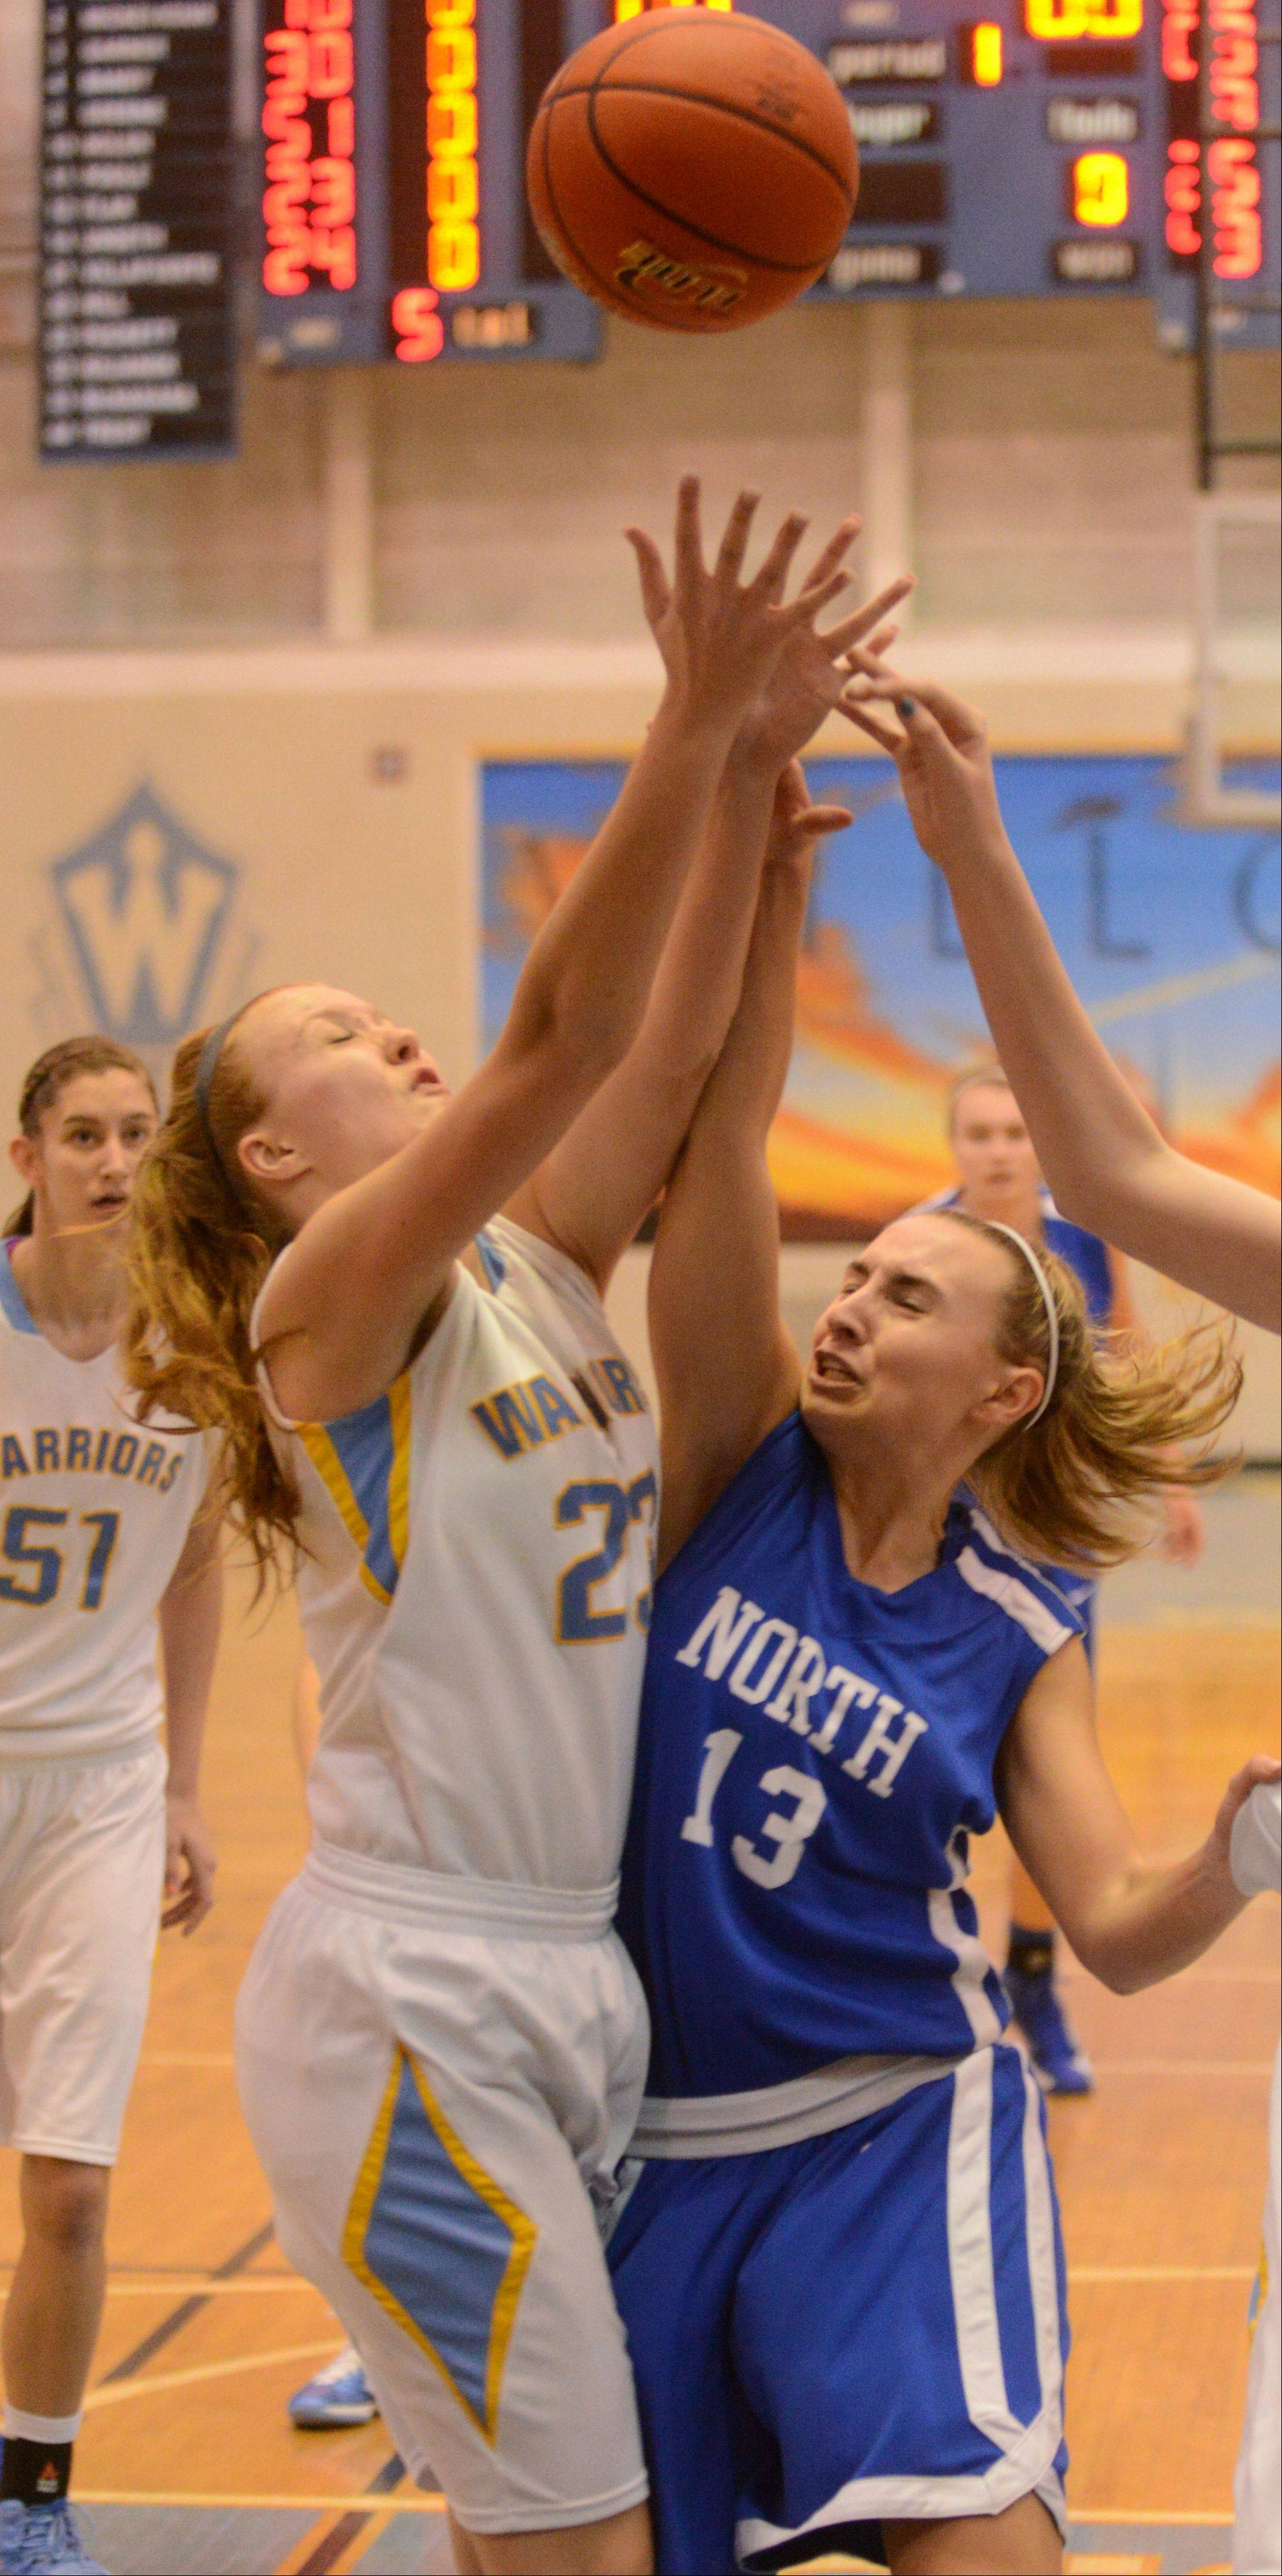 Images: Wheaton North vs. Maine West, girls basketball